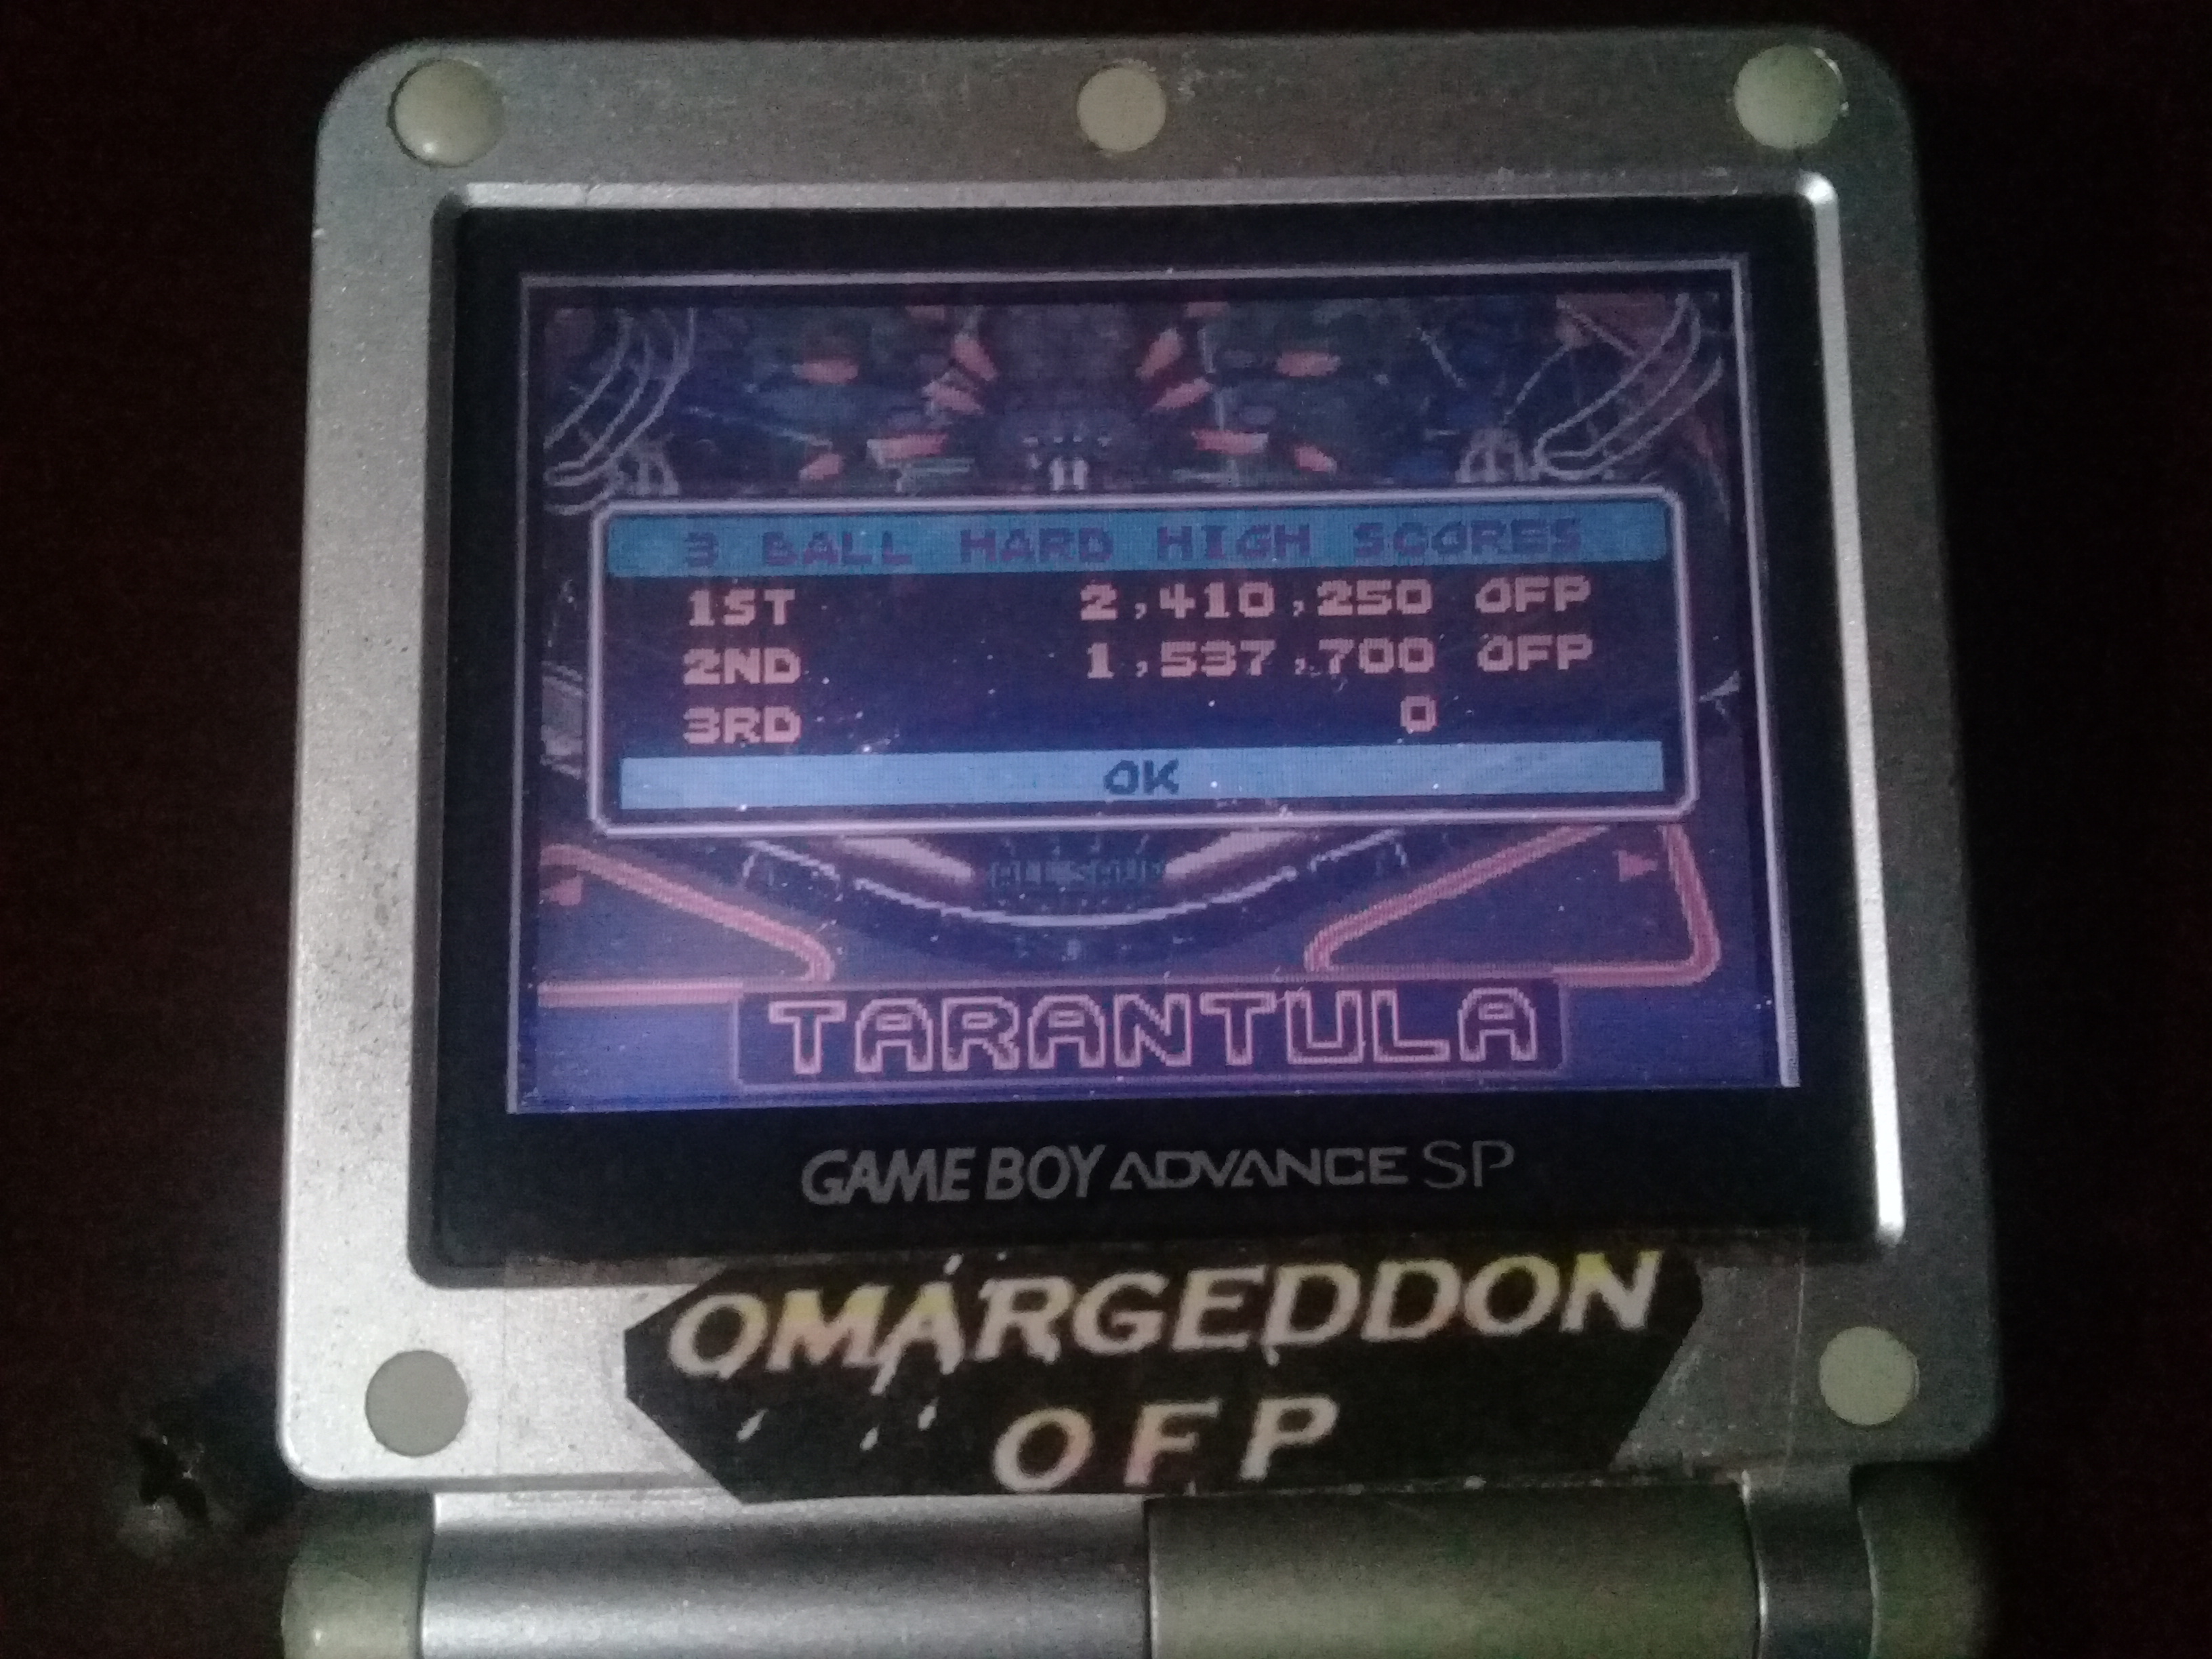 omargeddon: Pinball Advance: Tarantula [3 Balls] [Hard] (GBA) 2,410,250 points on 2019-10-20 01:39:45